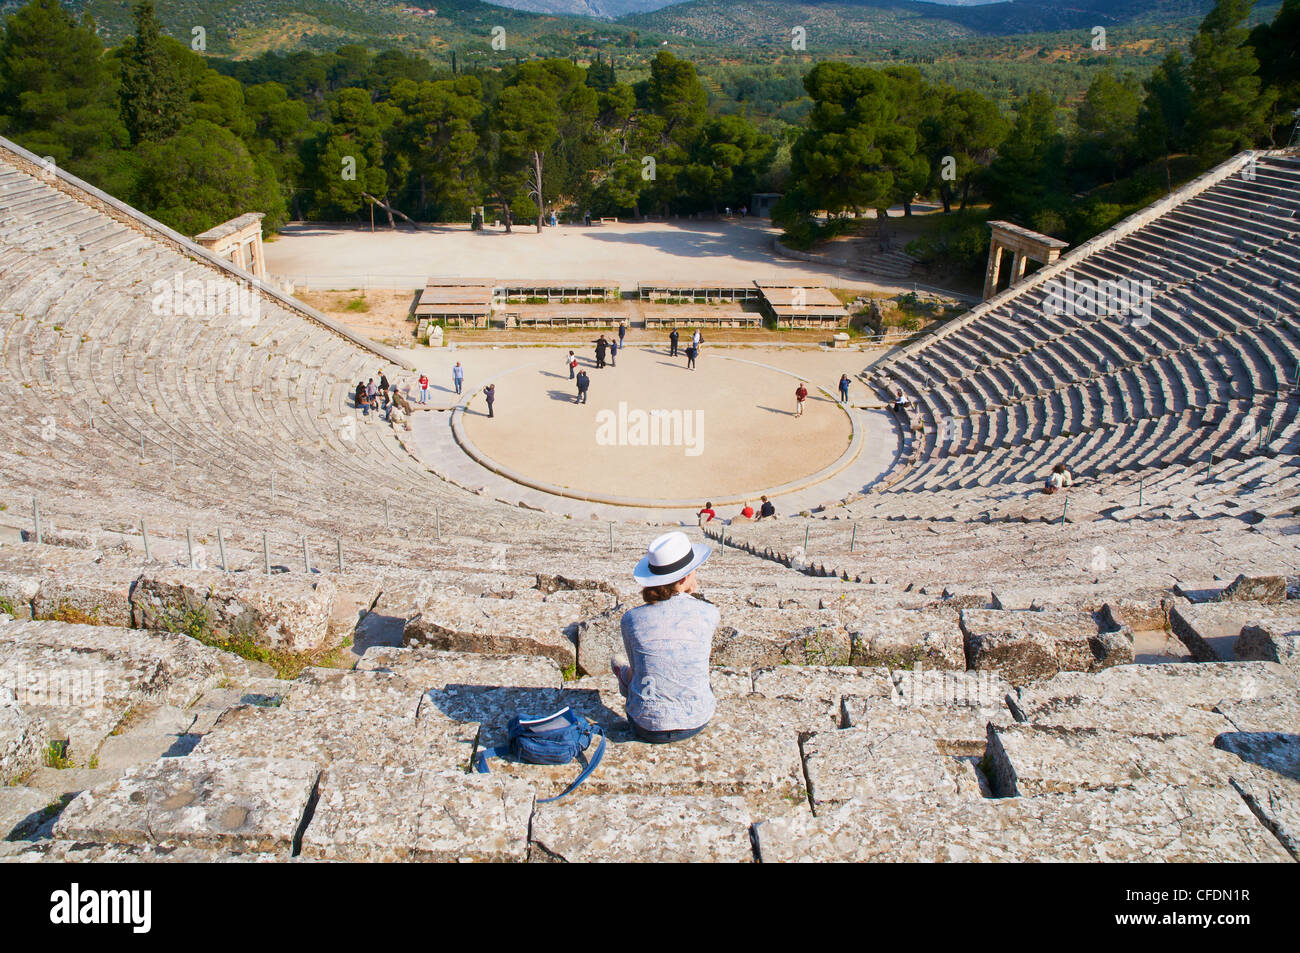 Ancient theatre, Epidaurus, Peloponnese, Greece, Europe - Stock Image